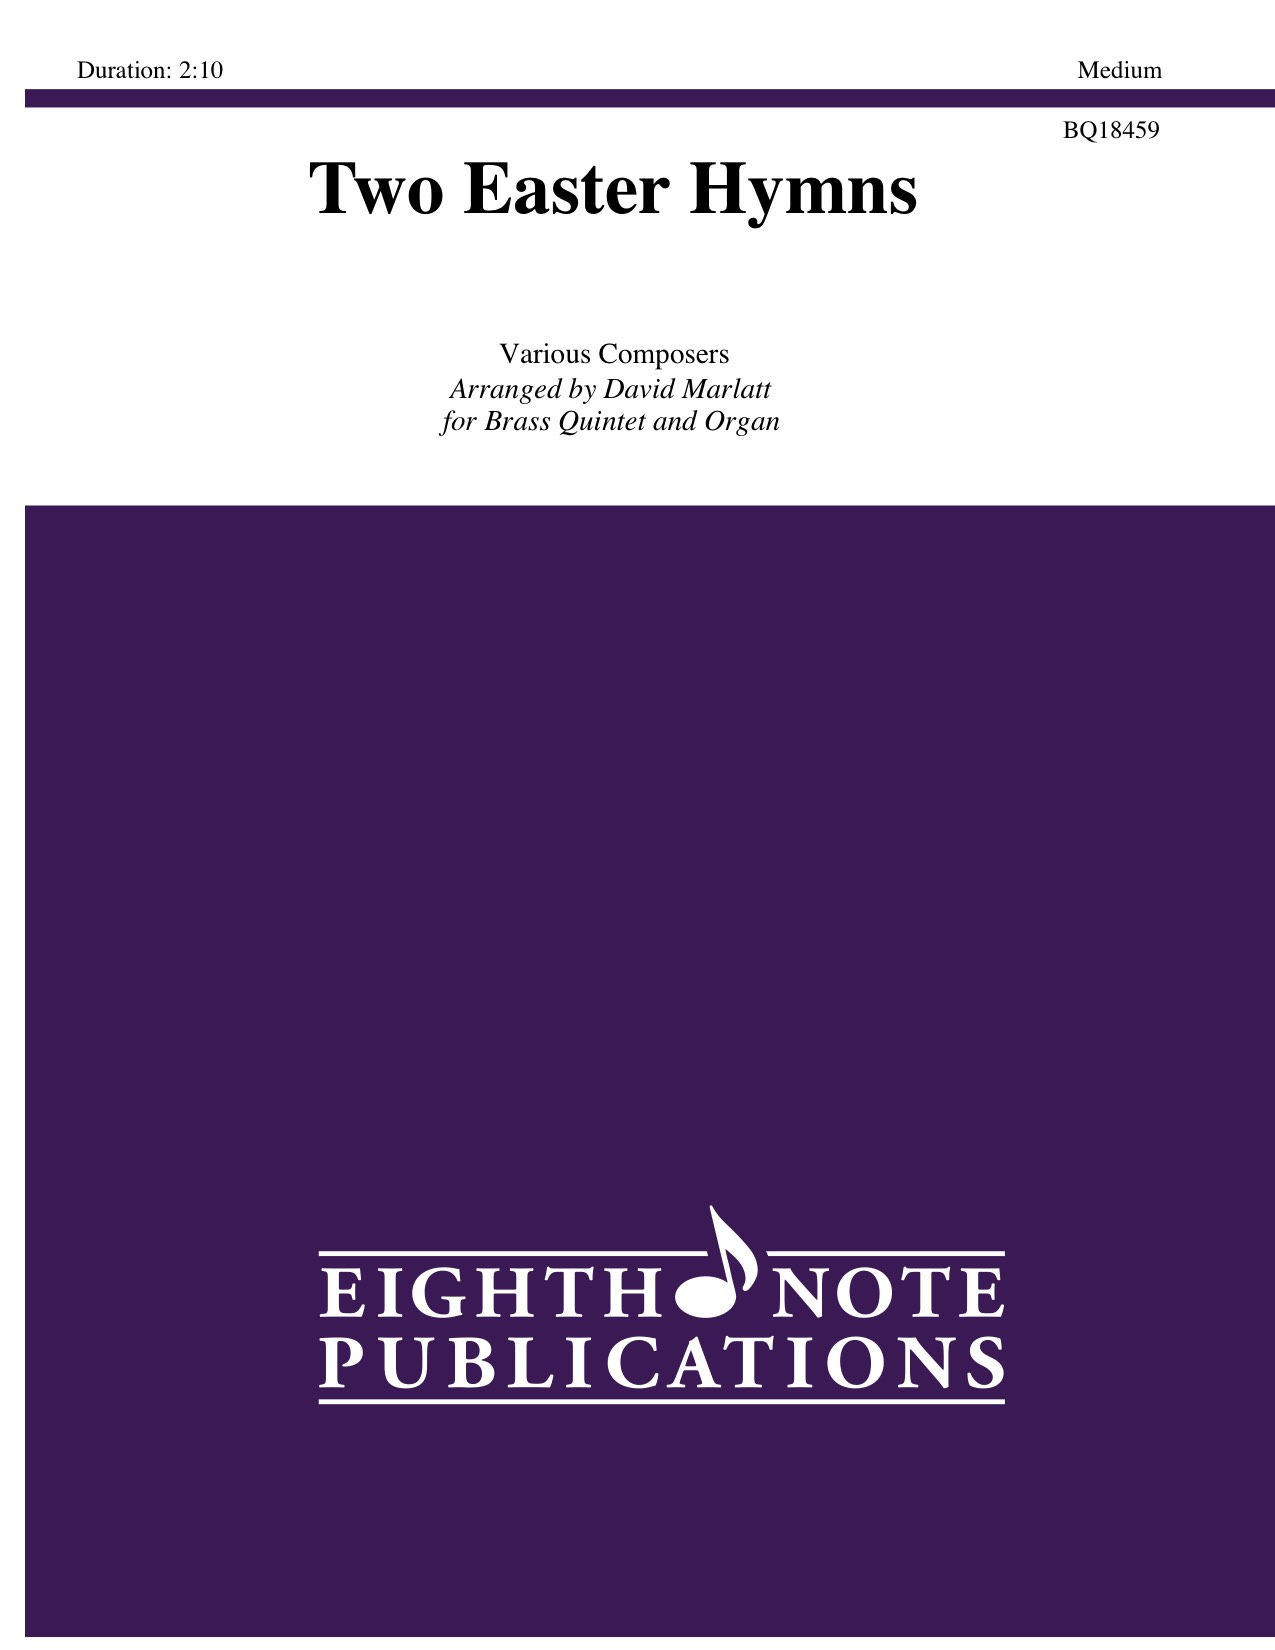 Two Easter Hymns - Various Composers